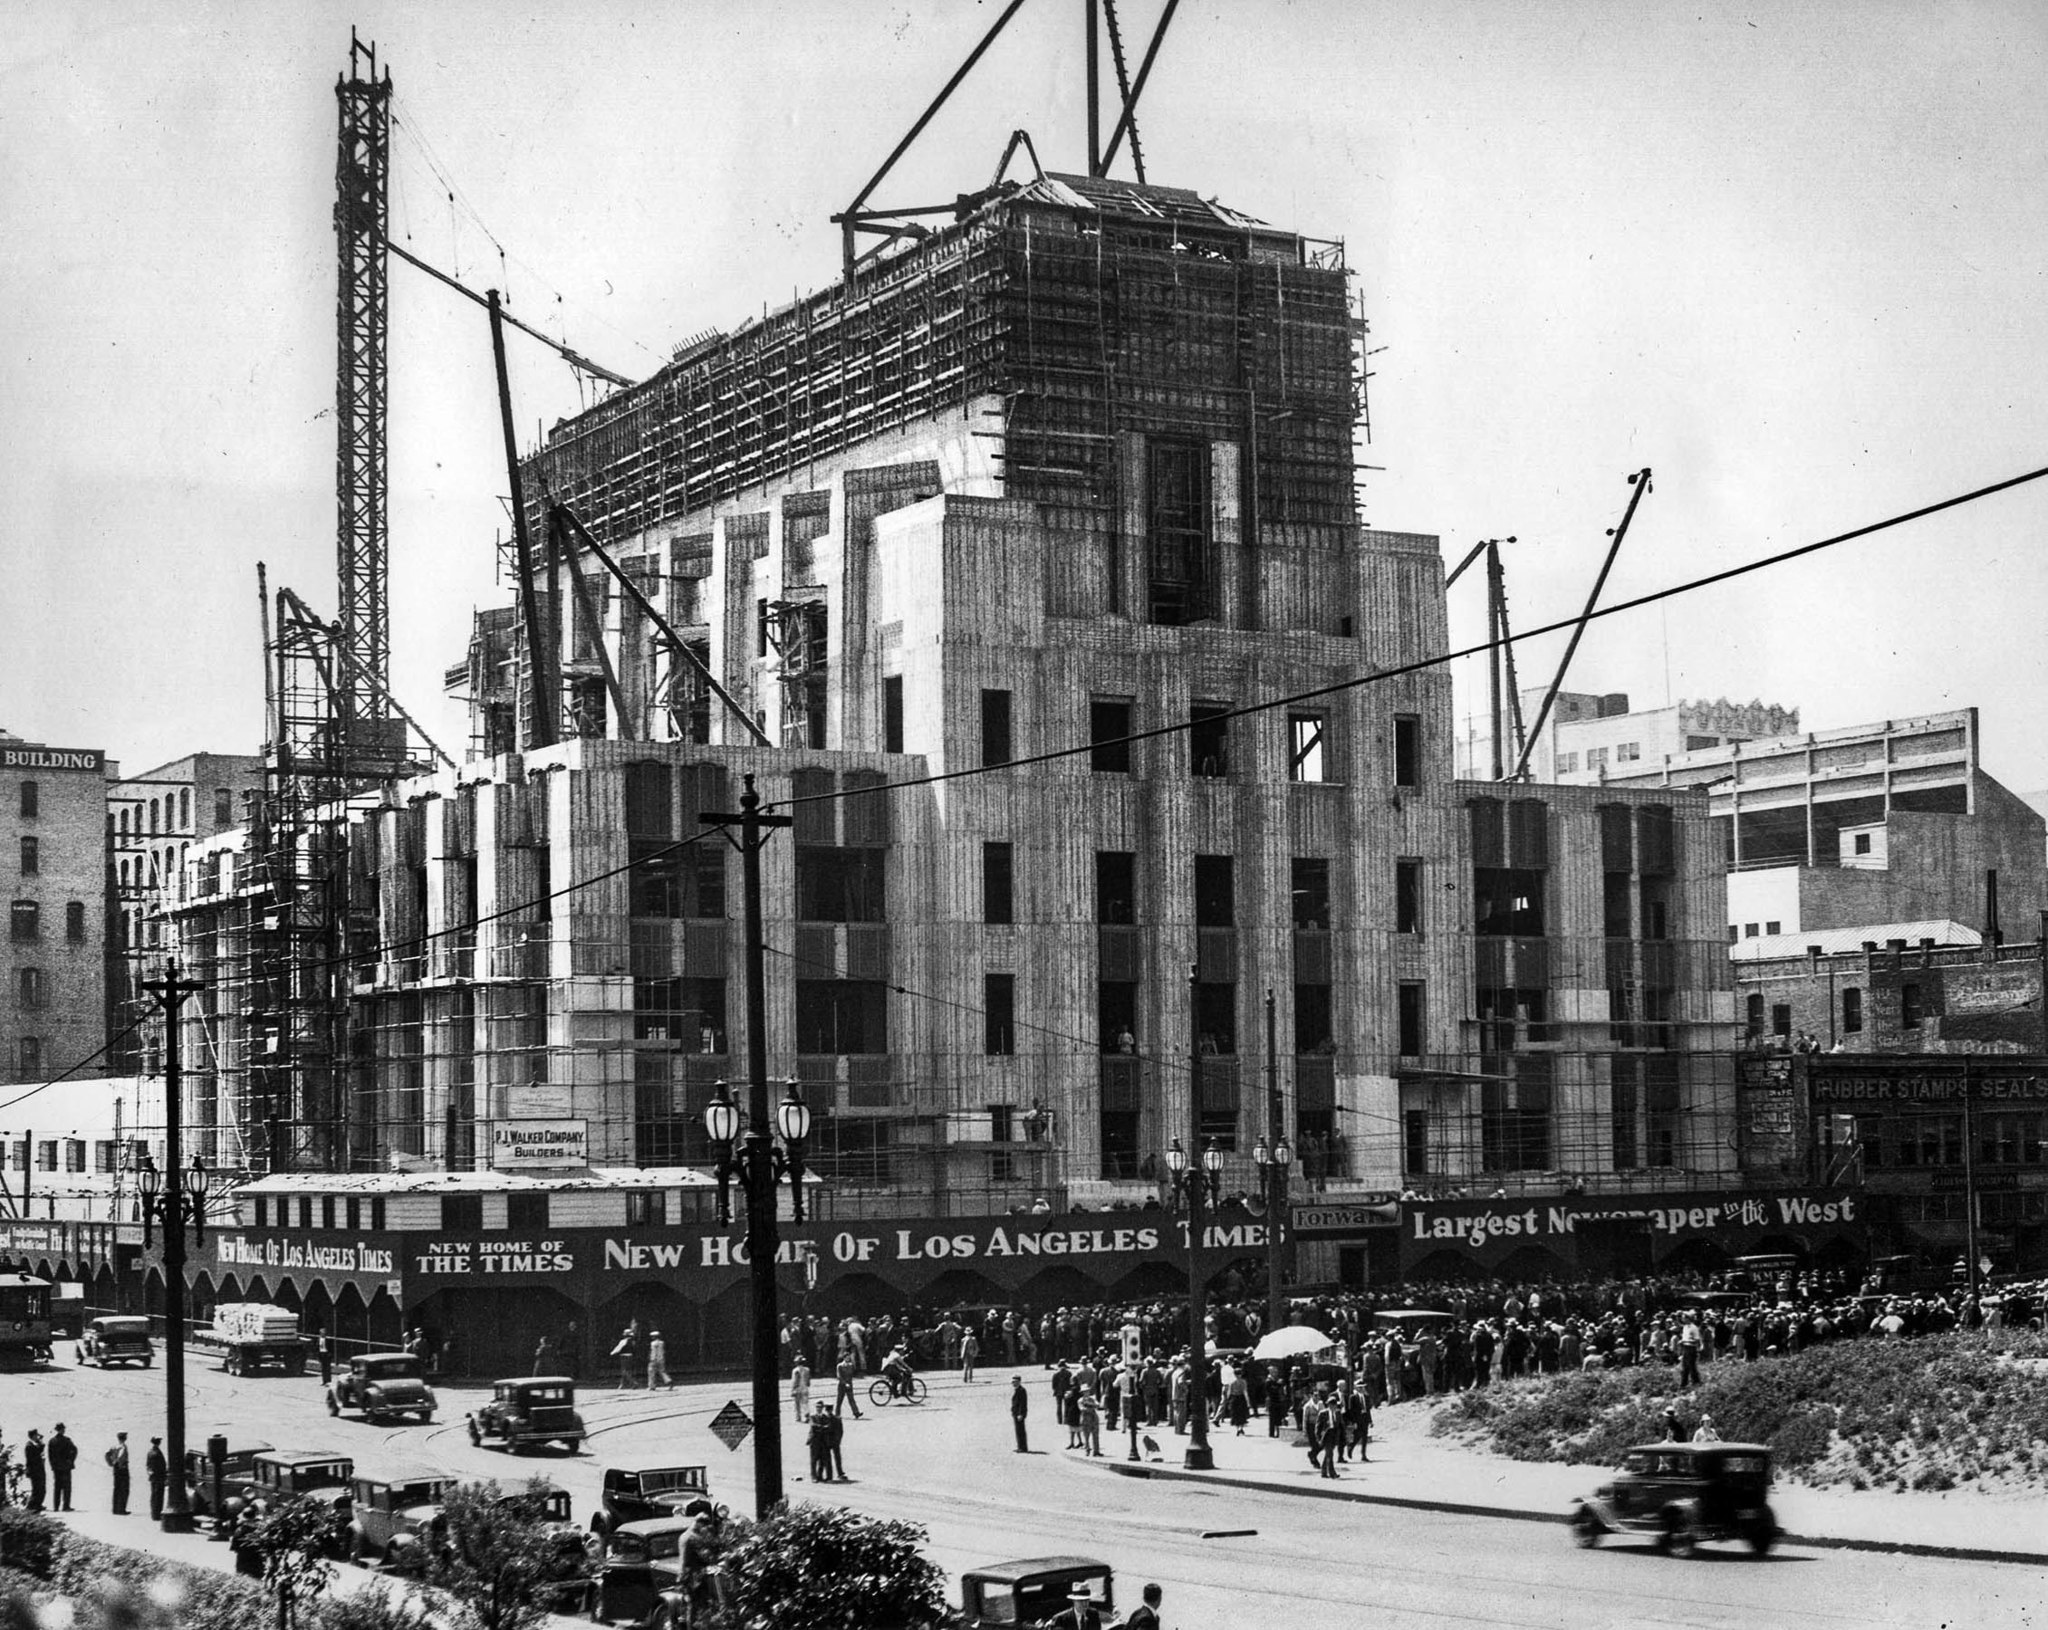 April 10, 1934: The Los Angeles Times Building at First and Spring street during cornerstone ceremon